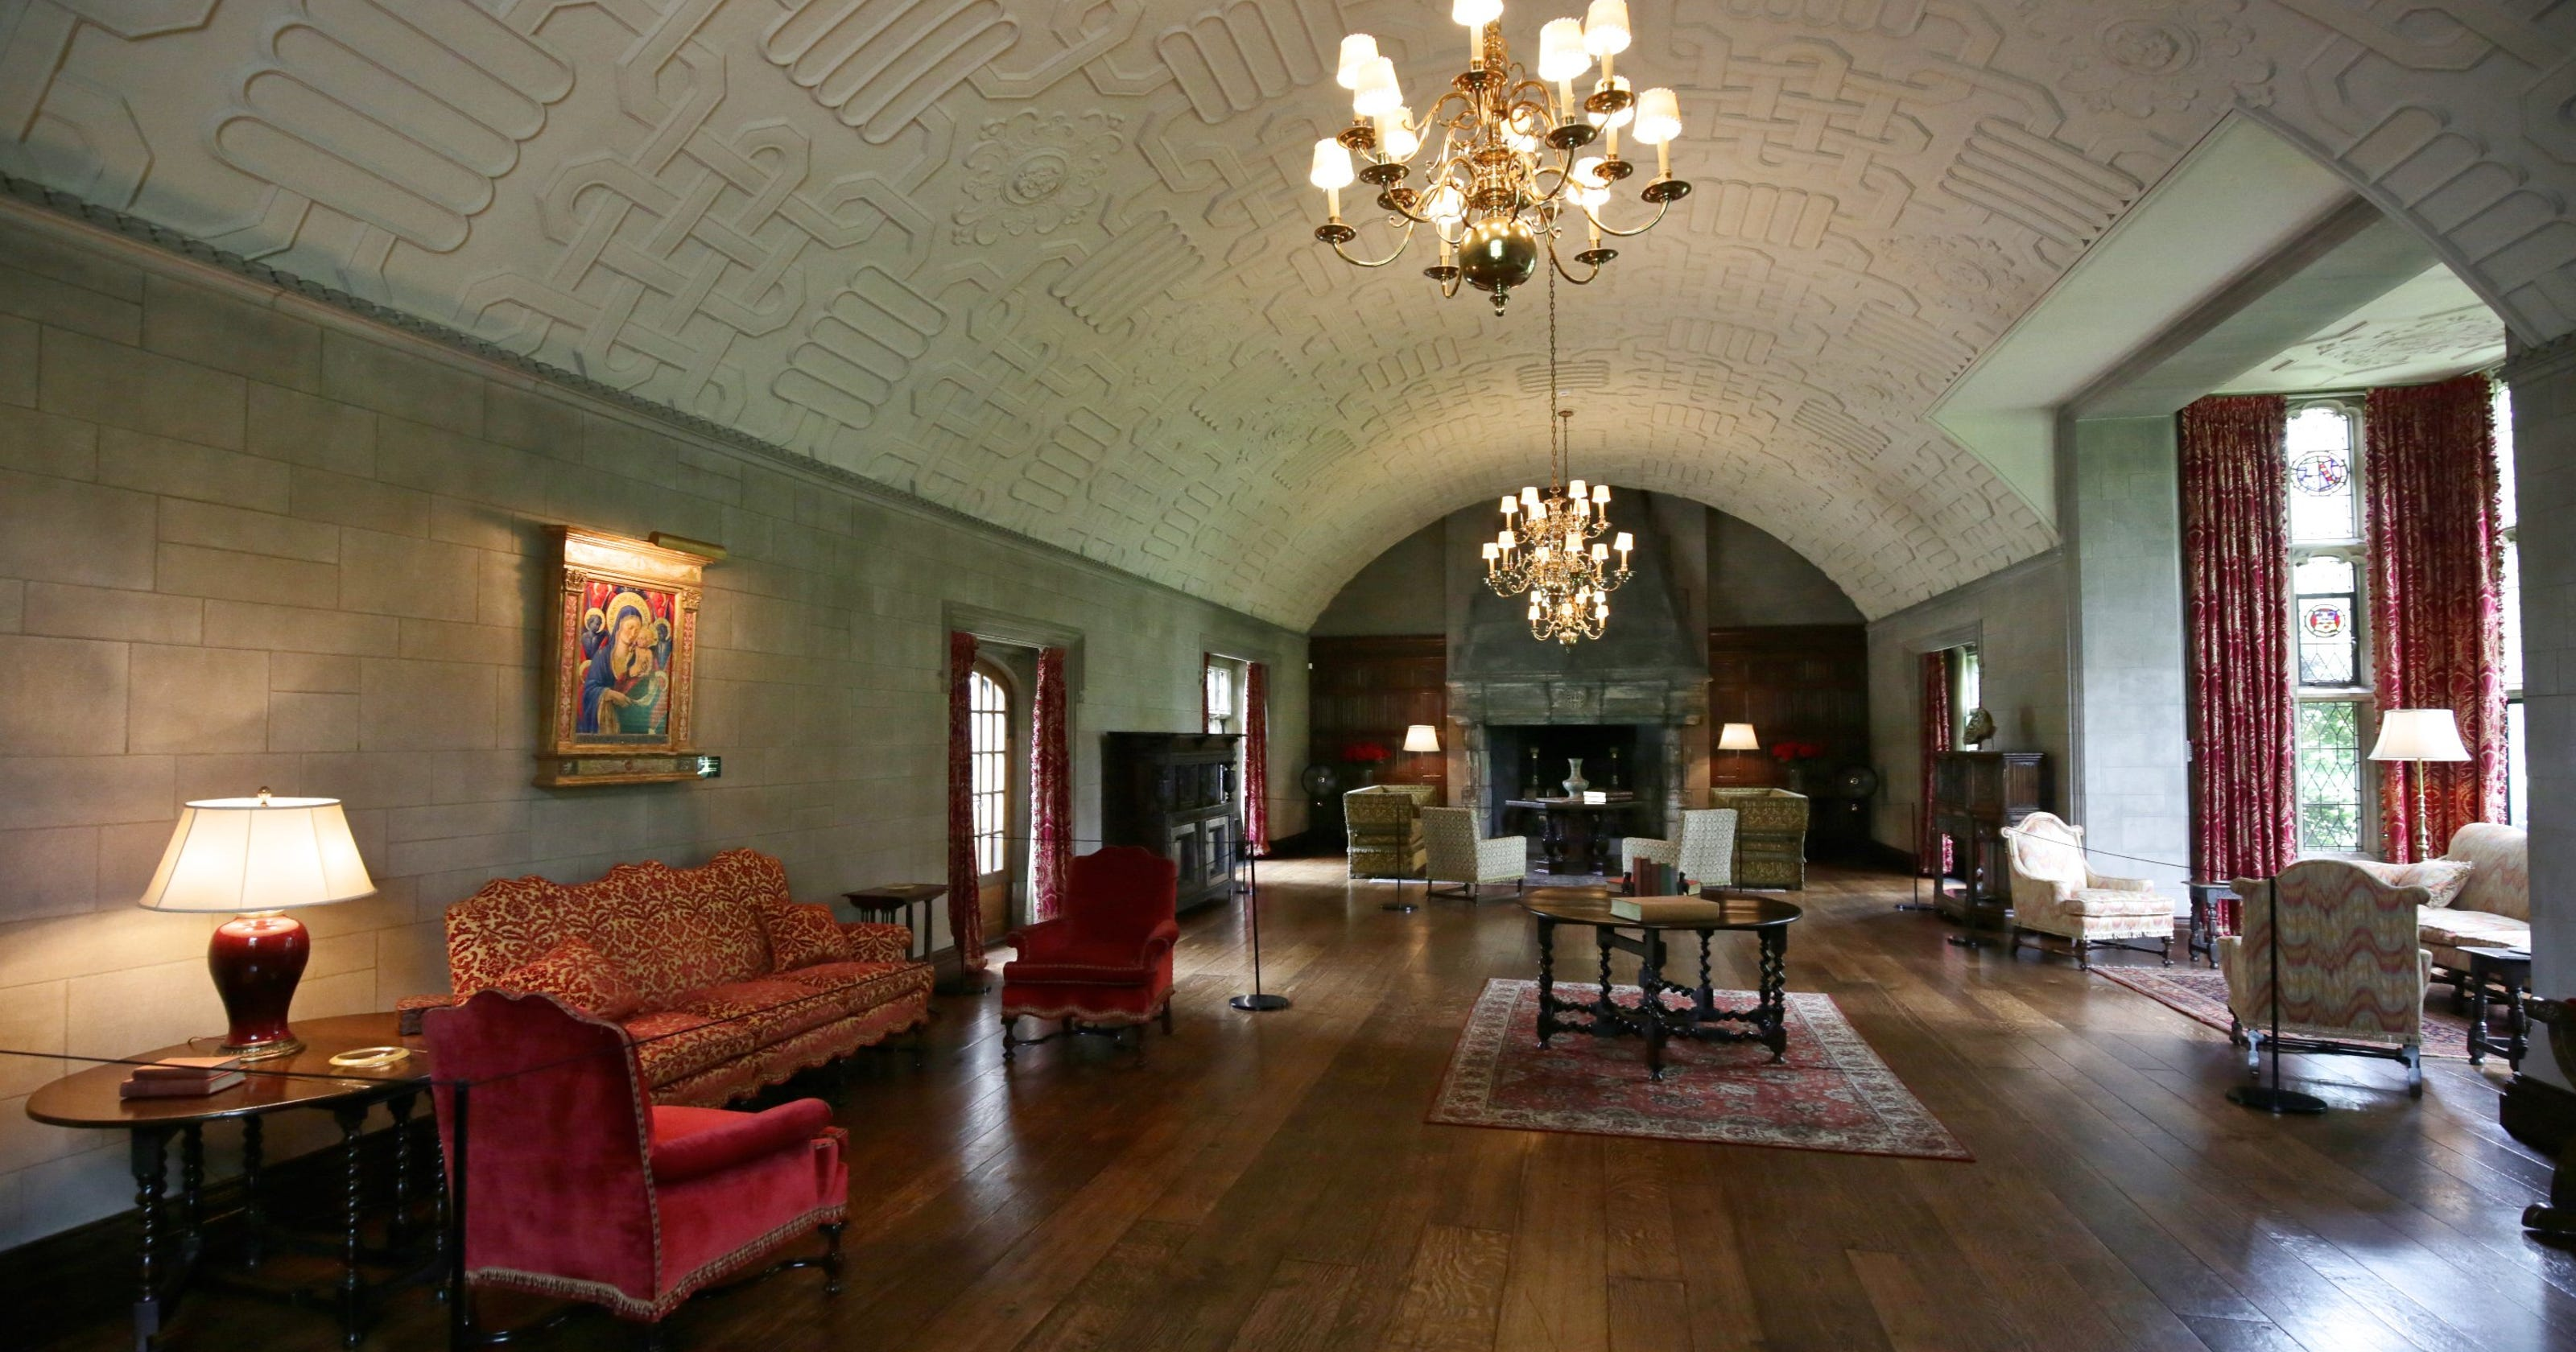 Ford House in Grosse Pointe Shores named a historic landmark